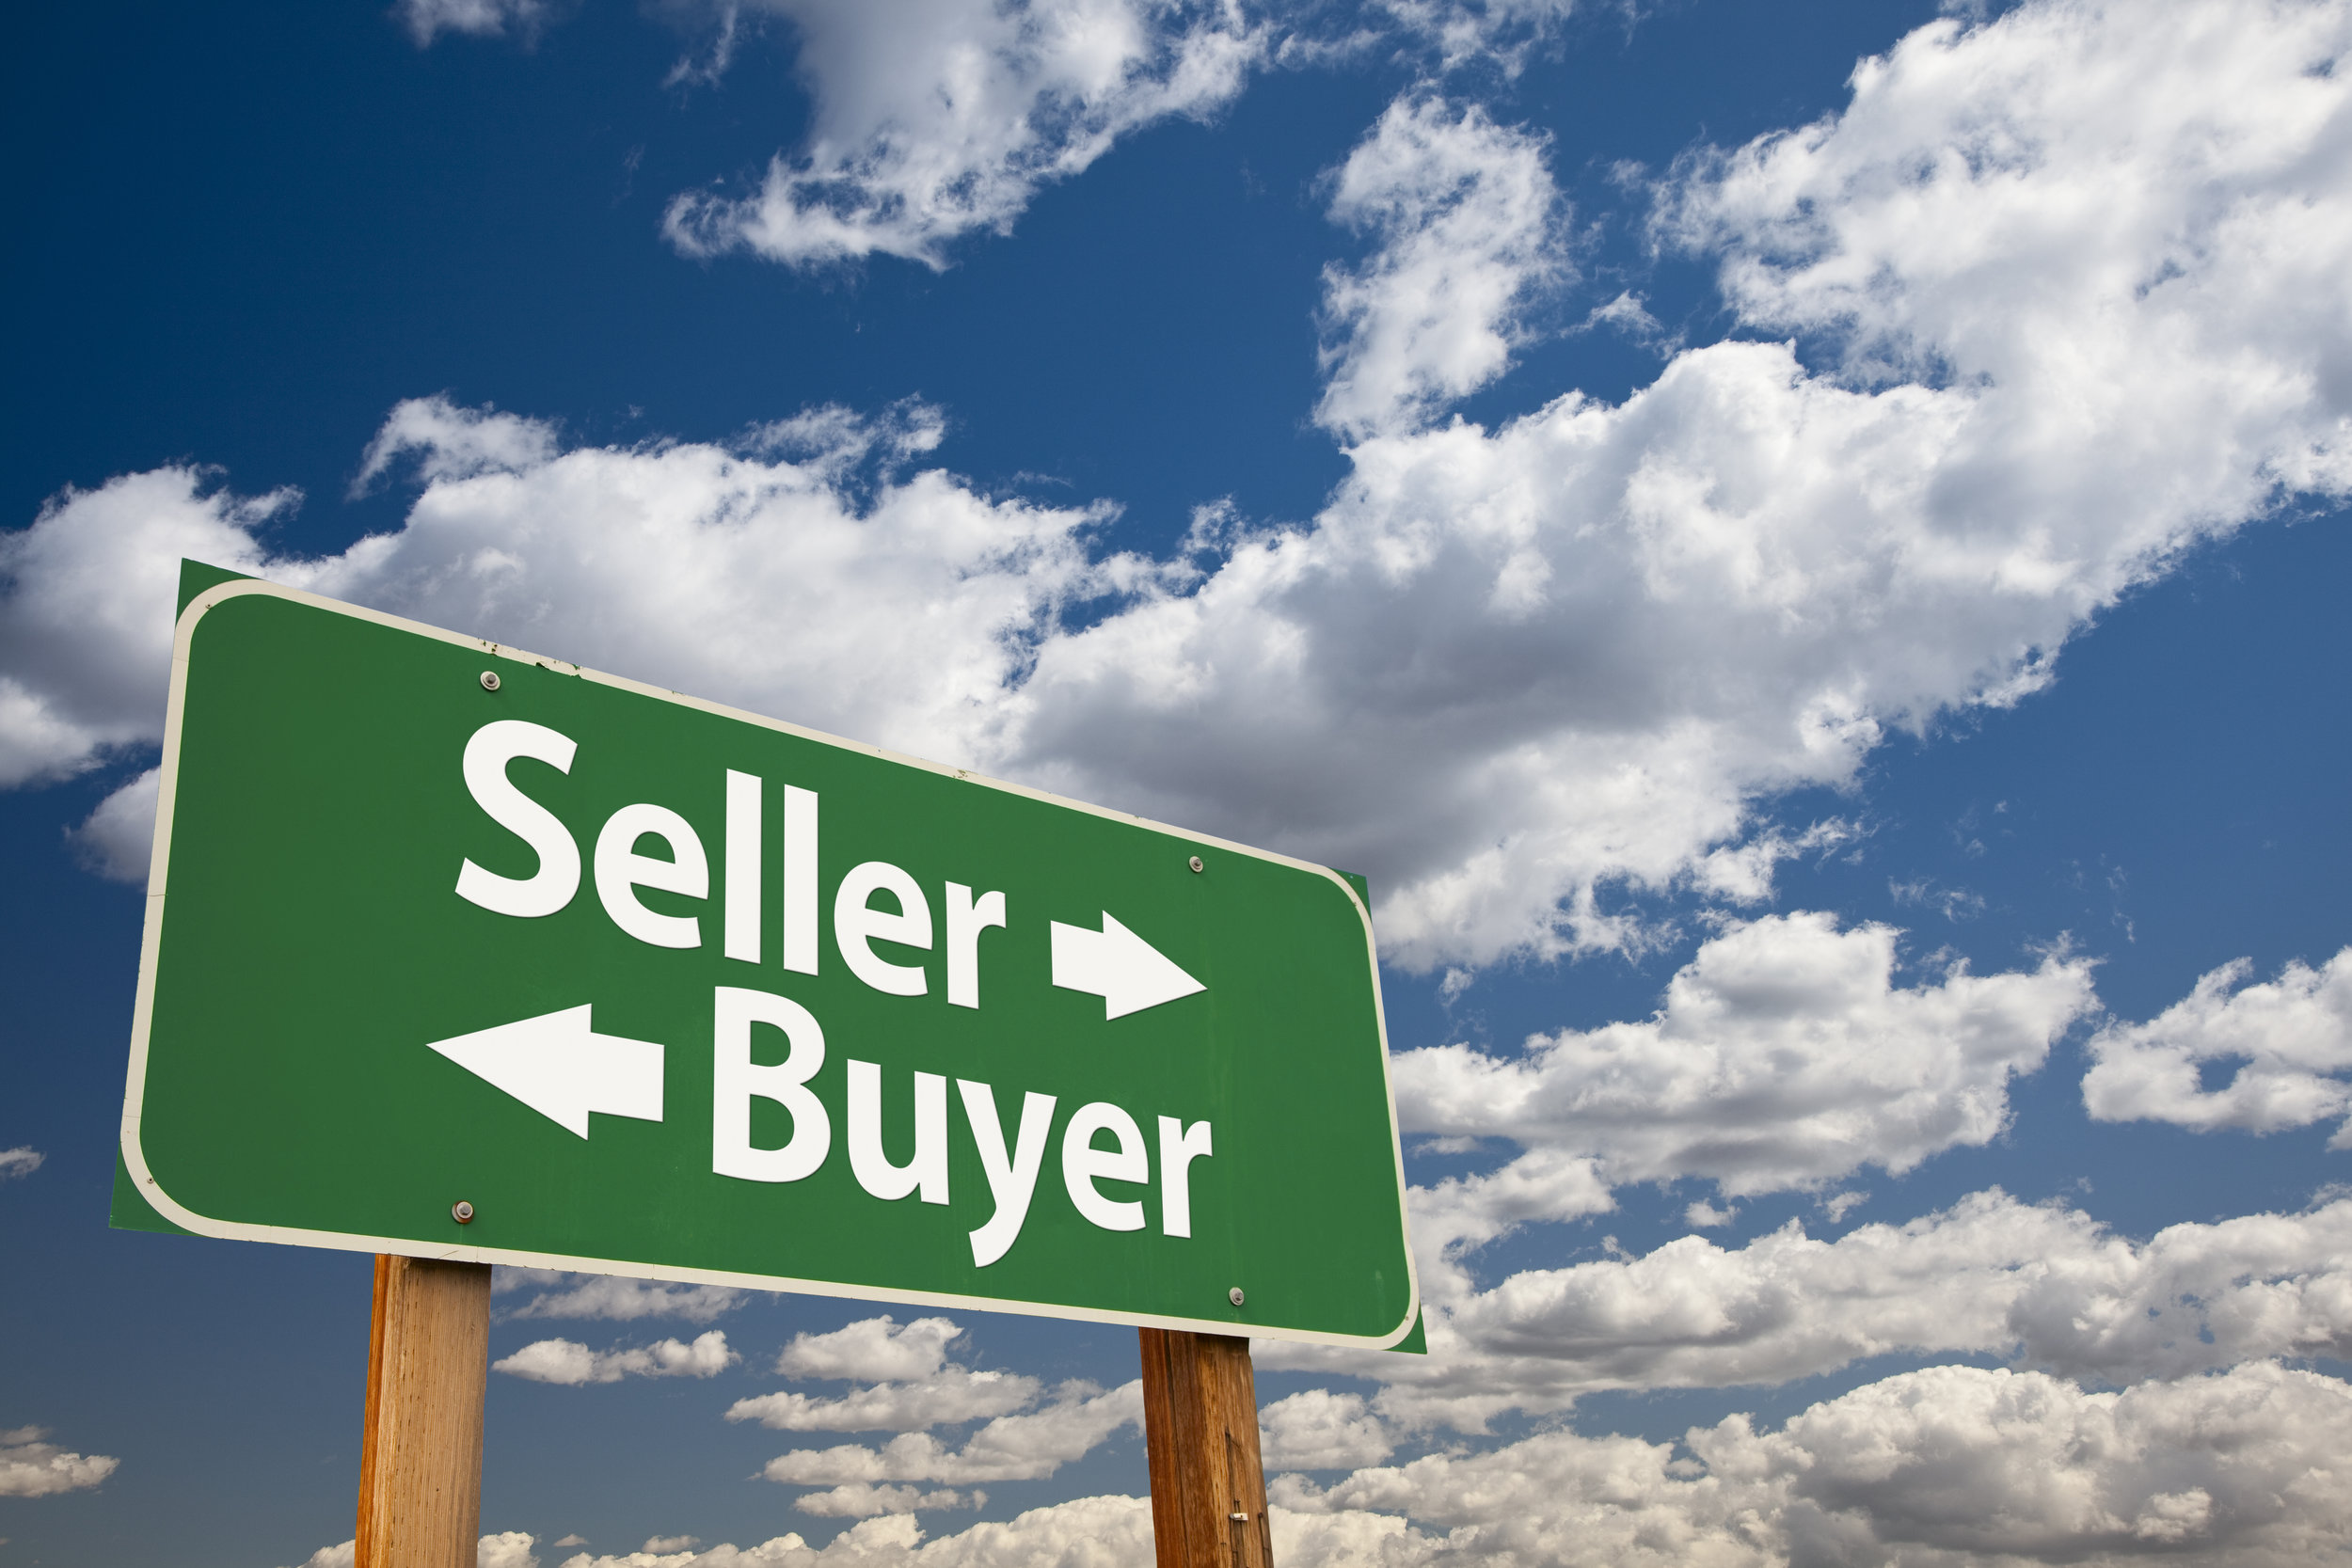 Seller, Buyer Green Road Sign Over Clouds